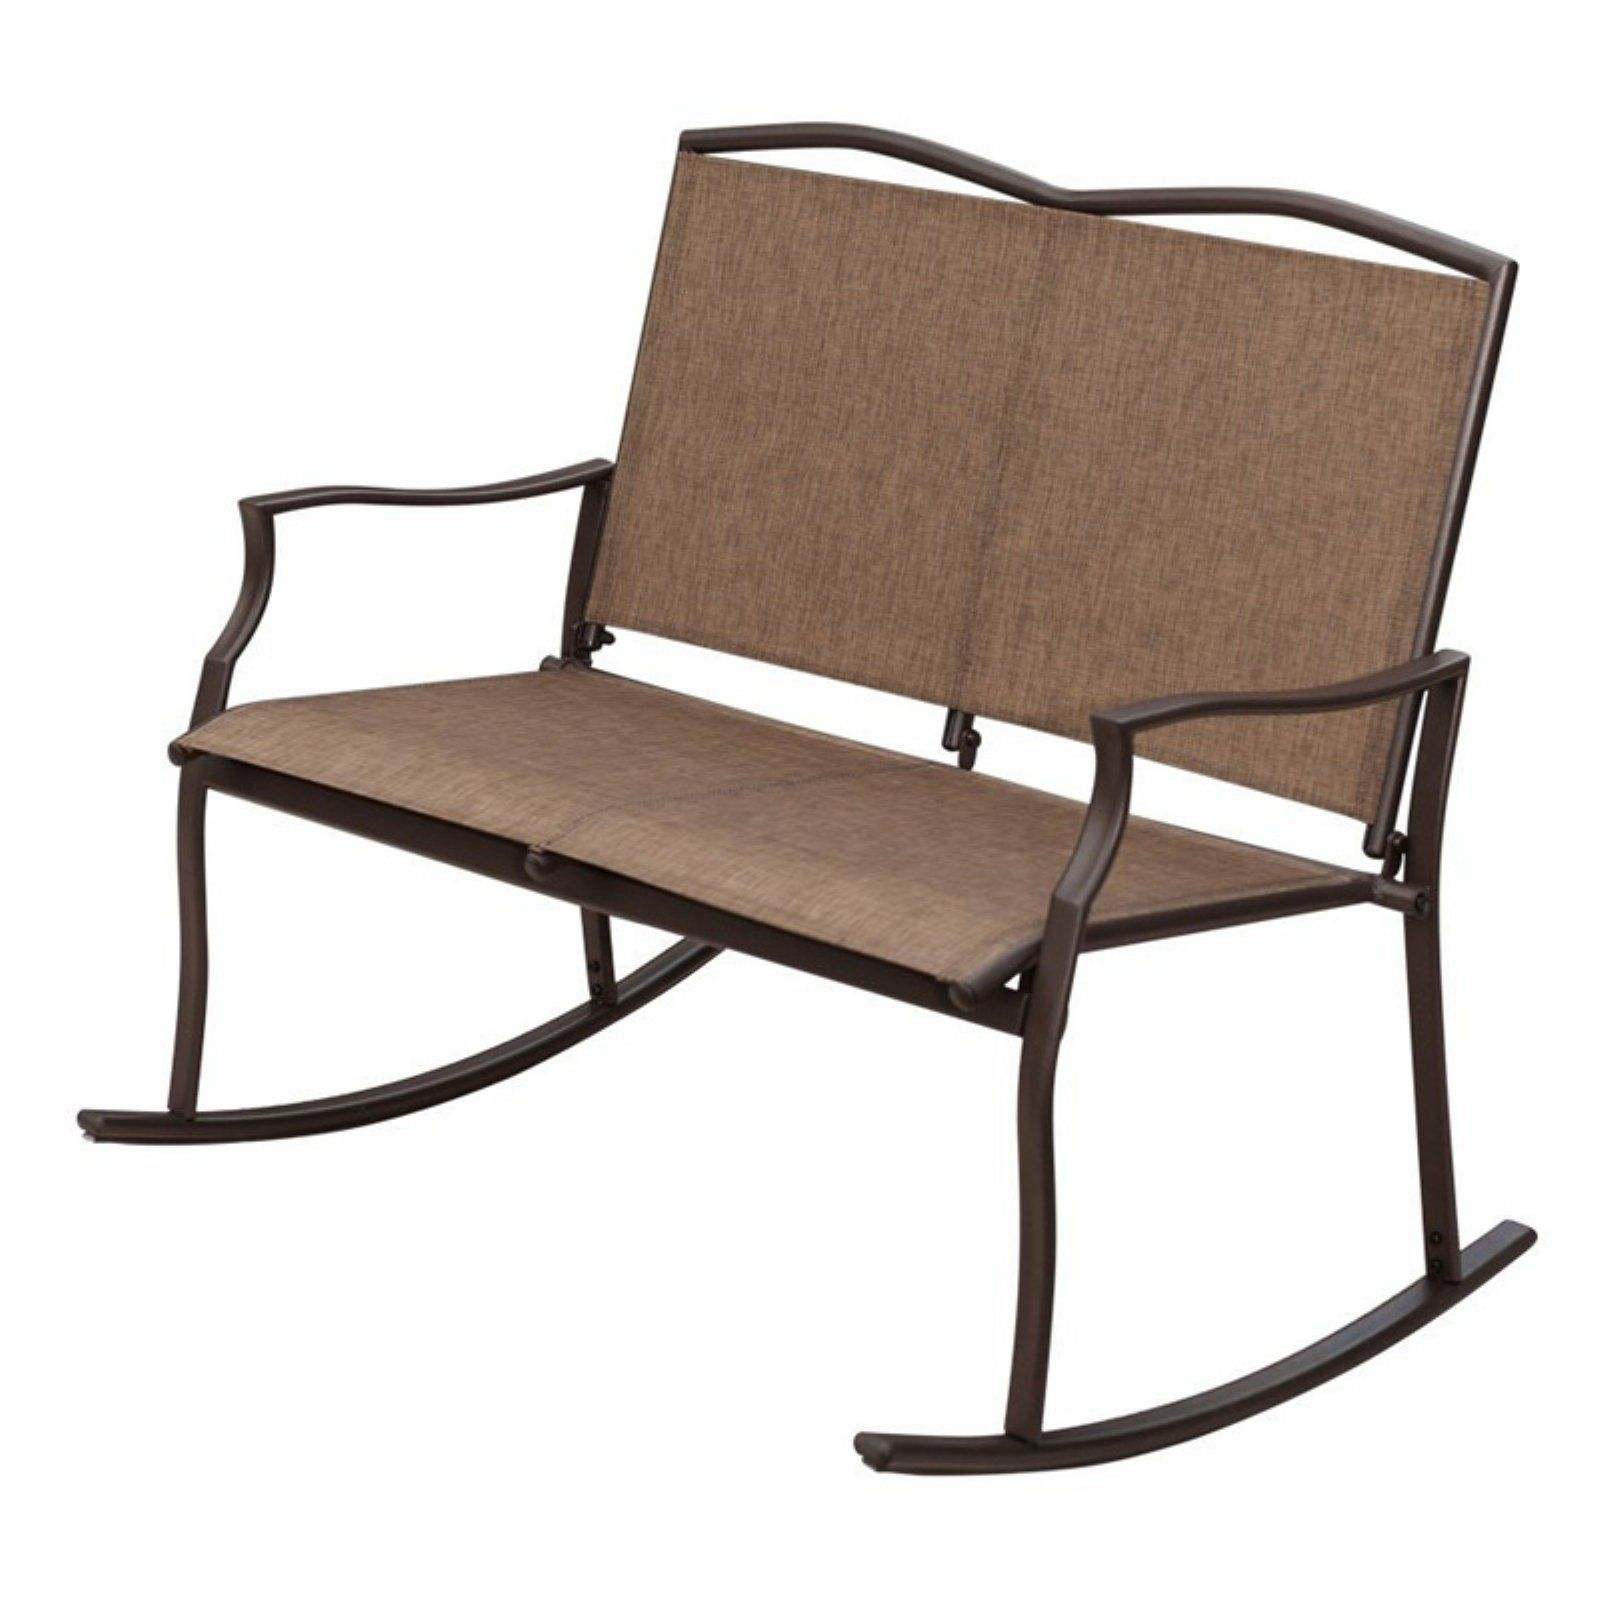 Sunlife garden party sling loveseat double outdoor rocking chair